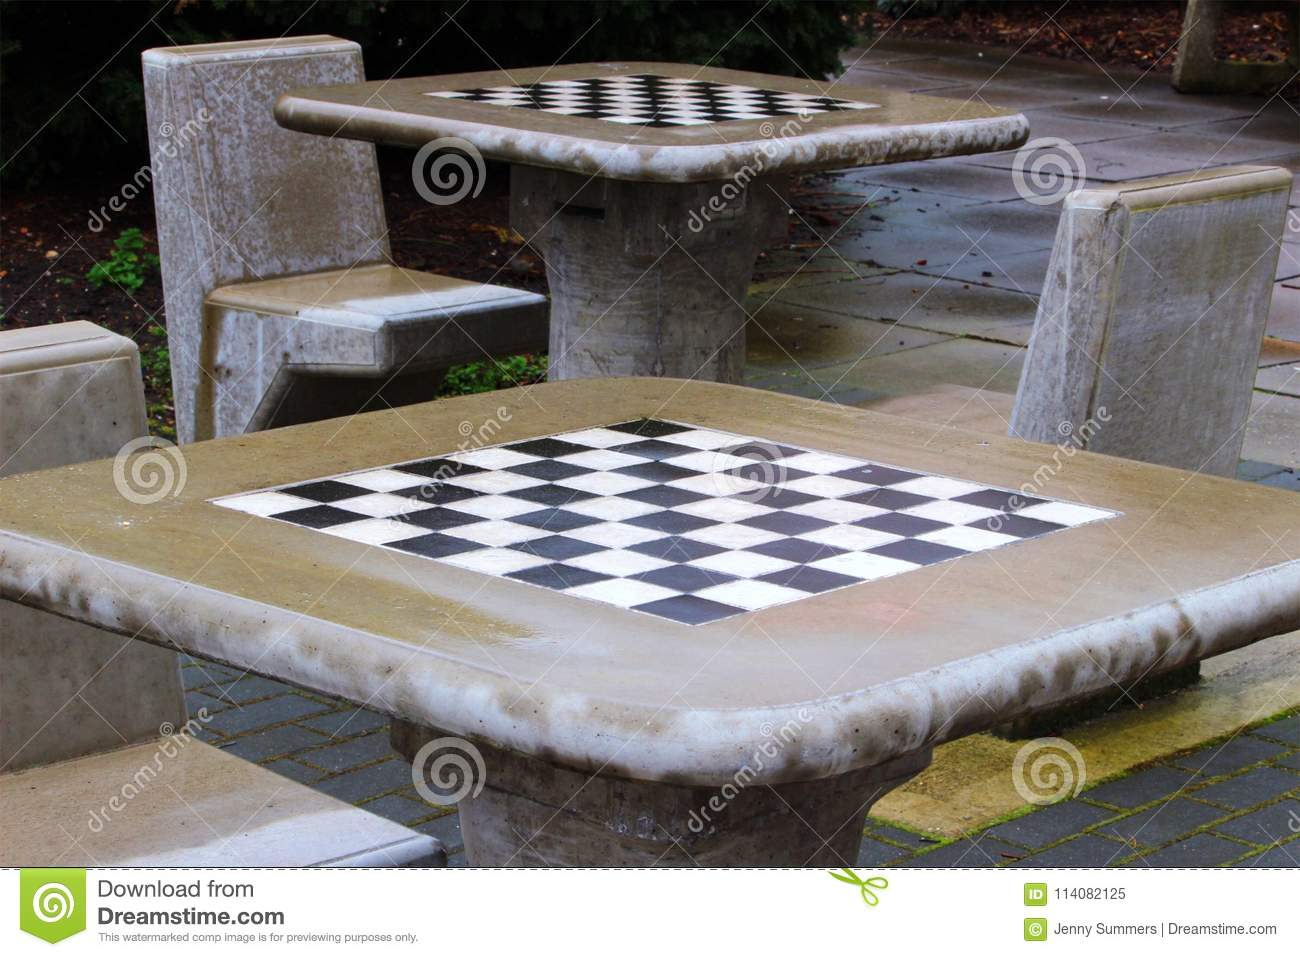 Outdoor Games Area After An April Shower. Chequered Concrete Chess Tables  And Chairs Slowly Drying Out, Waiting For Lunchtime Gamers